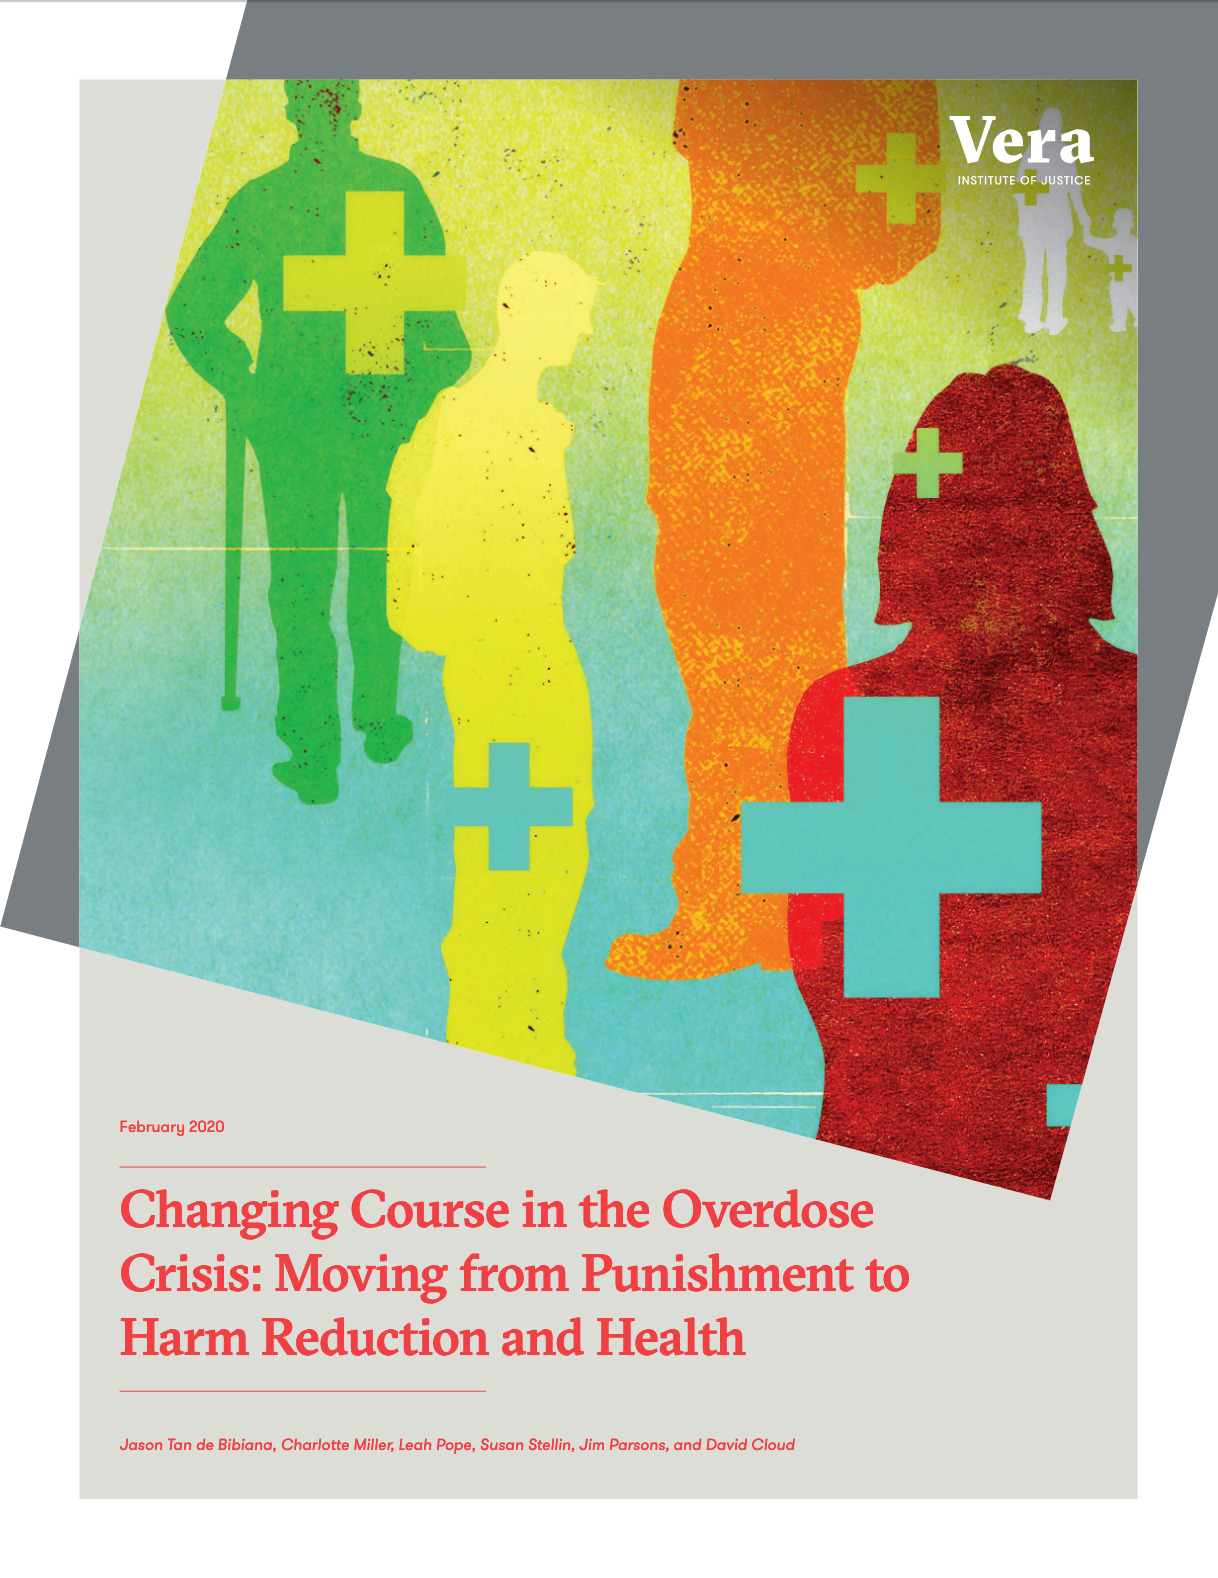 Read Changing Course in the Overdose Crisis: Moving From Punishment to Harm Reduction and Health on Vera.org.